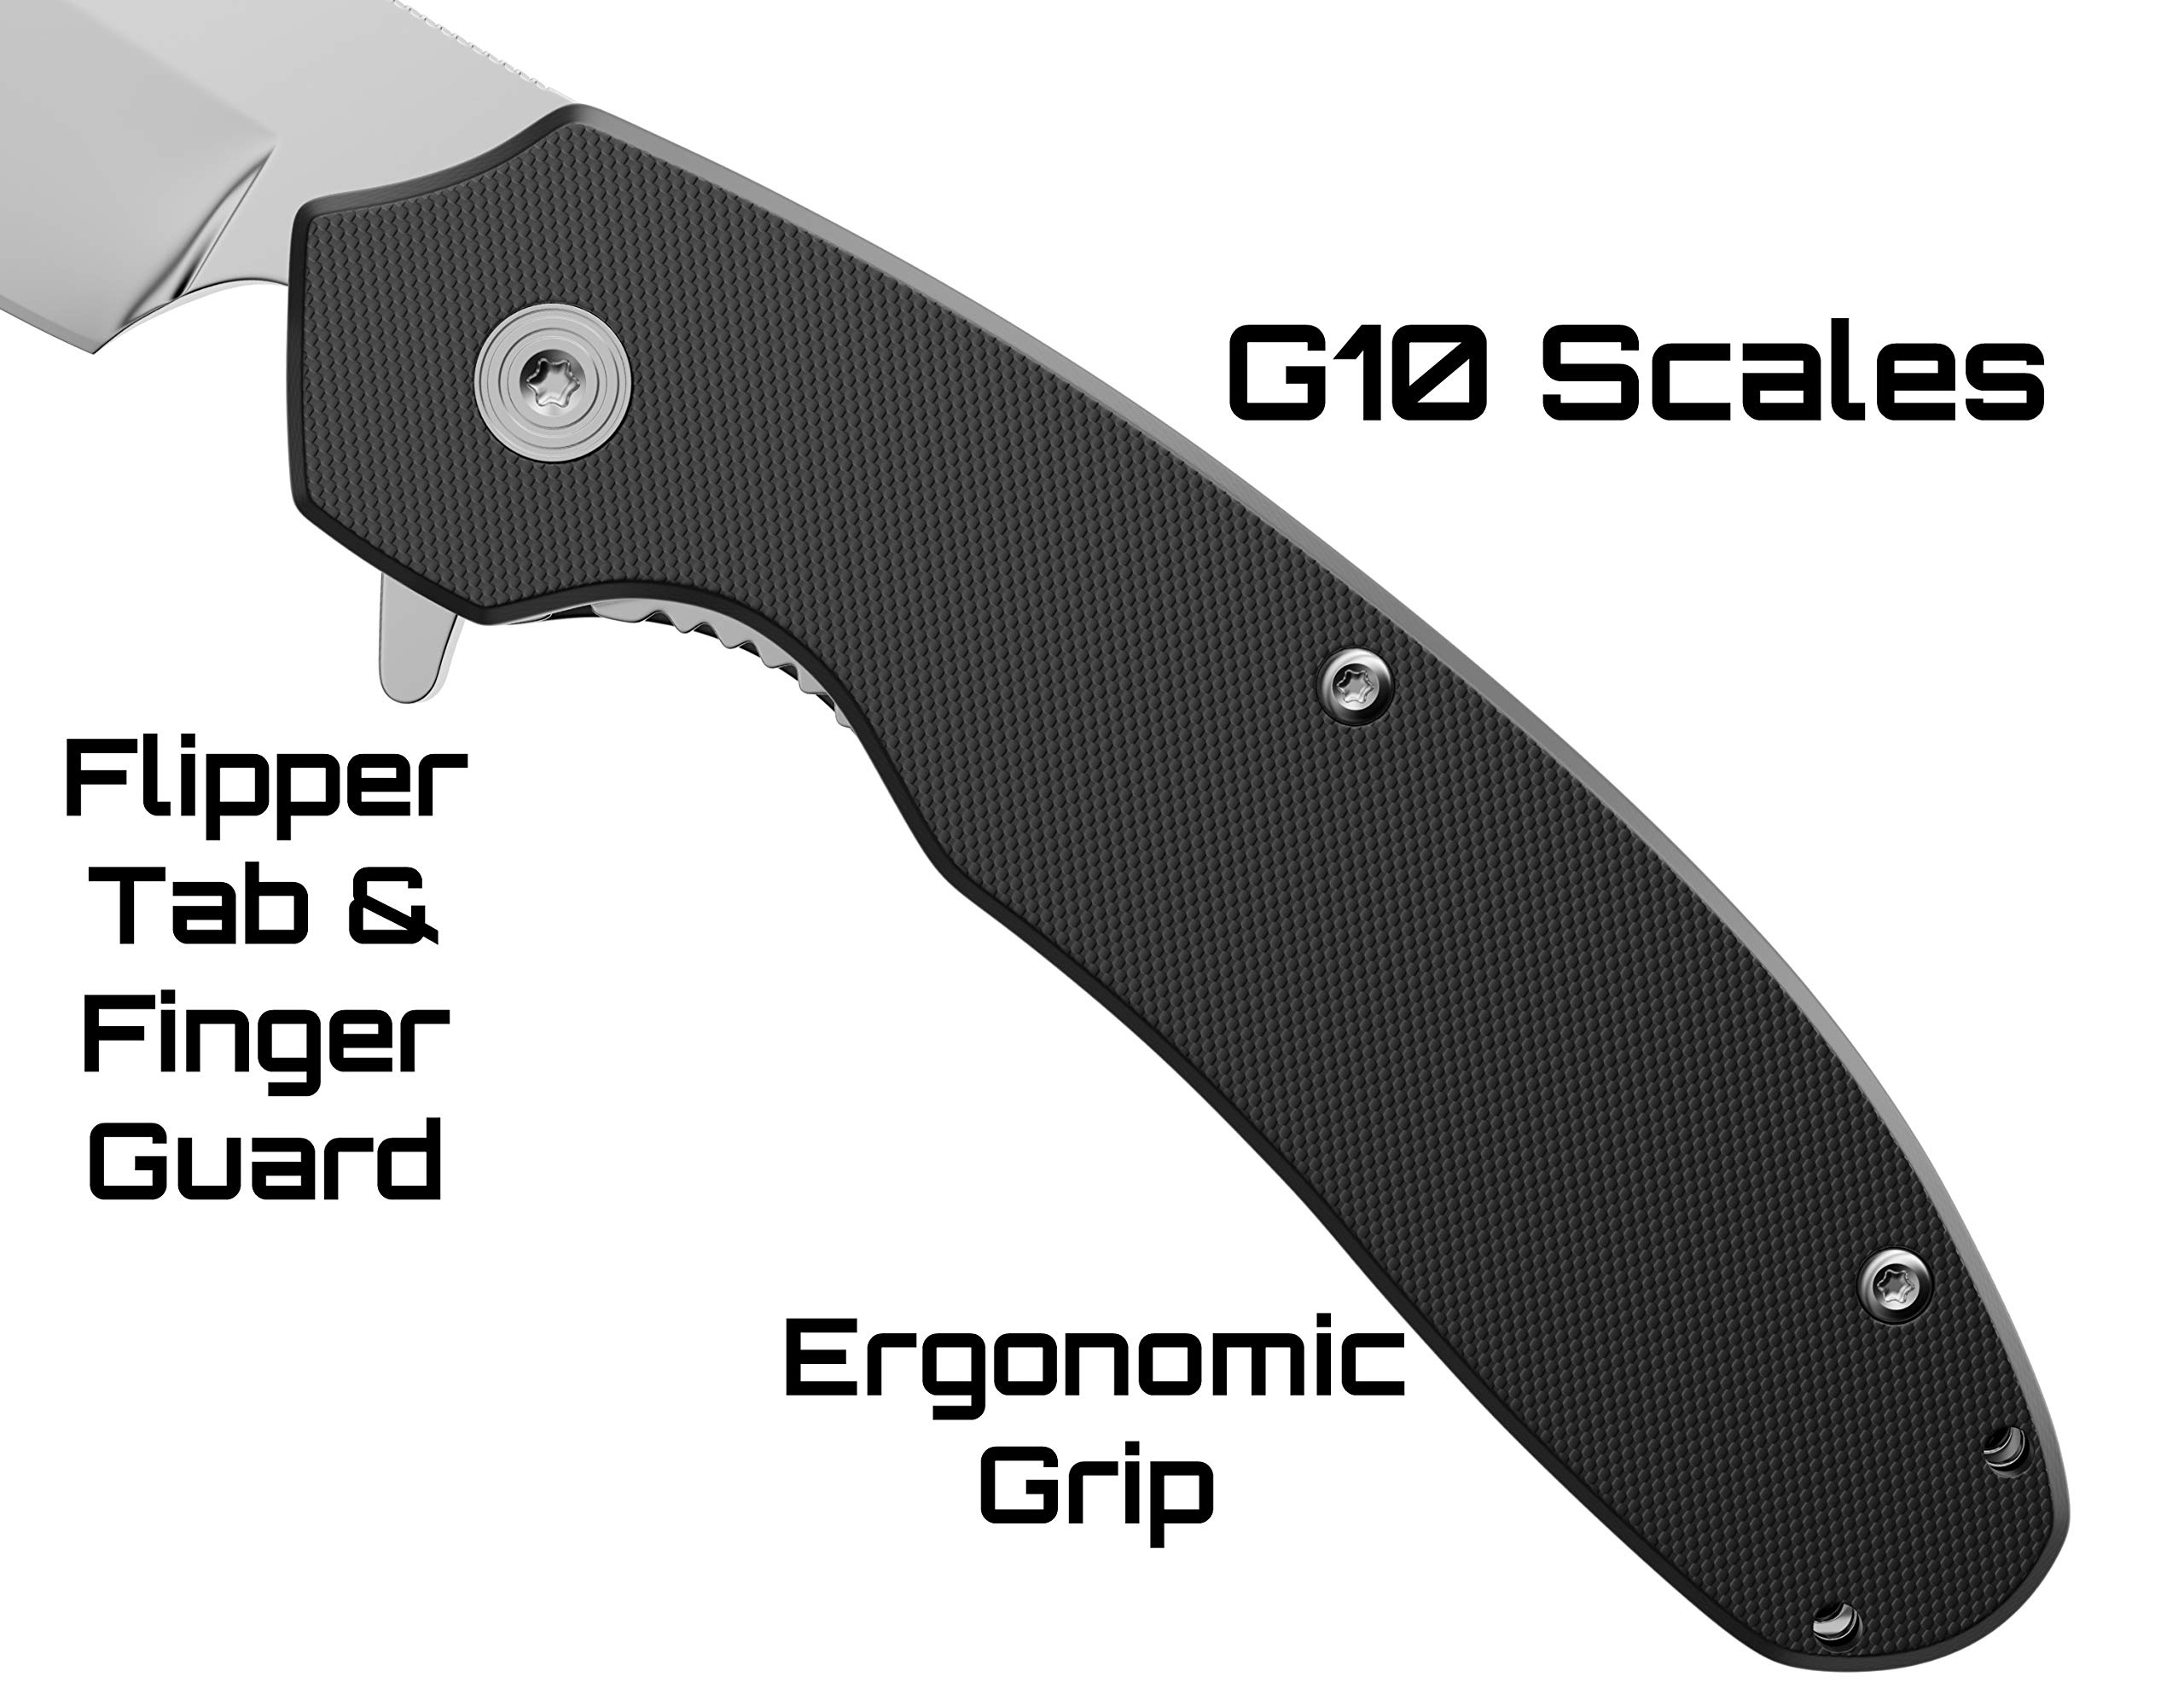 Off-Grid Knives - Cleaver Compact EDC Folding Knife, Satin Finish, Safety Grid-Lock Turns This Folder Into A Fixed Blade, Cryo AUS8 Blade Steel, G10 Handle & Tip-Up Reversible Deep Carry Pocket Clip by Off-Grid Knives (Image #5)